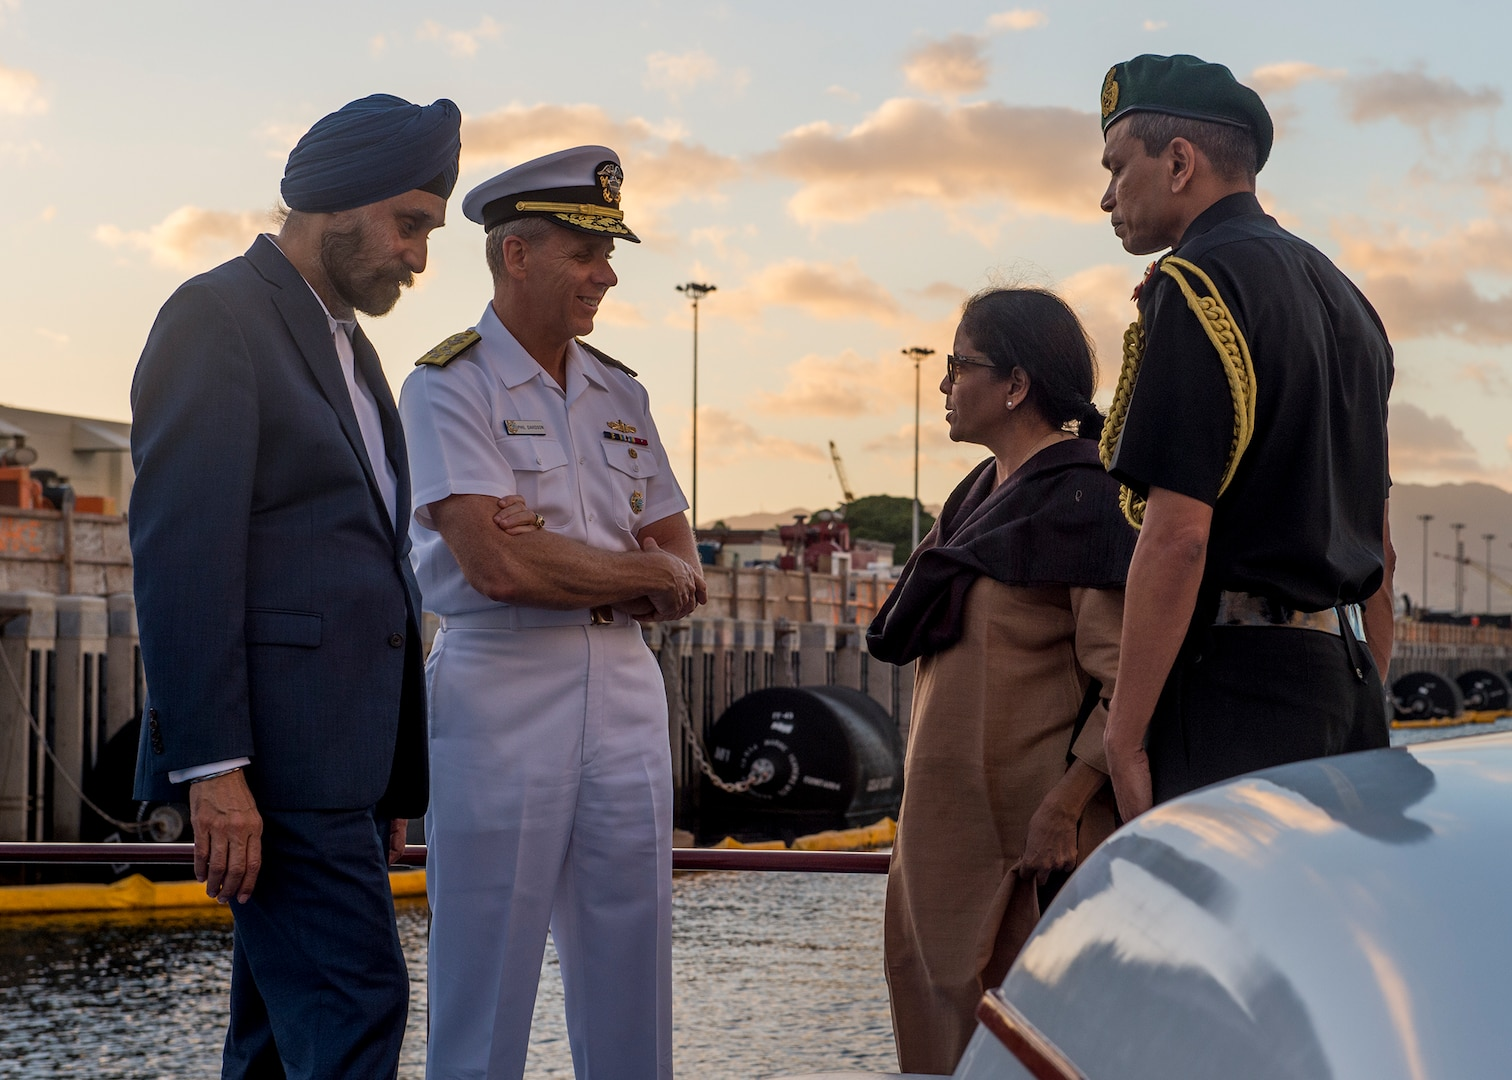 Commander, U.S. Indo-Pacific Command, Adm. Phil Davidson, hosts India's Minister of Defence, Nirmala Sitharaman, on a barge tour of historic Pearl Harbor. India and the U.S. are global partners in defense and security and are working together to assure a free and open Indo-Pacific.